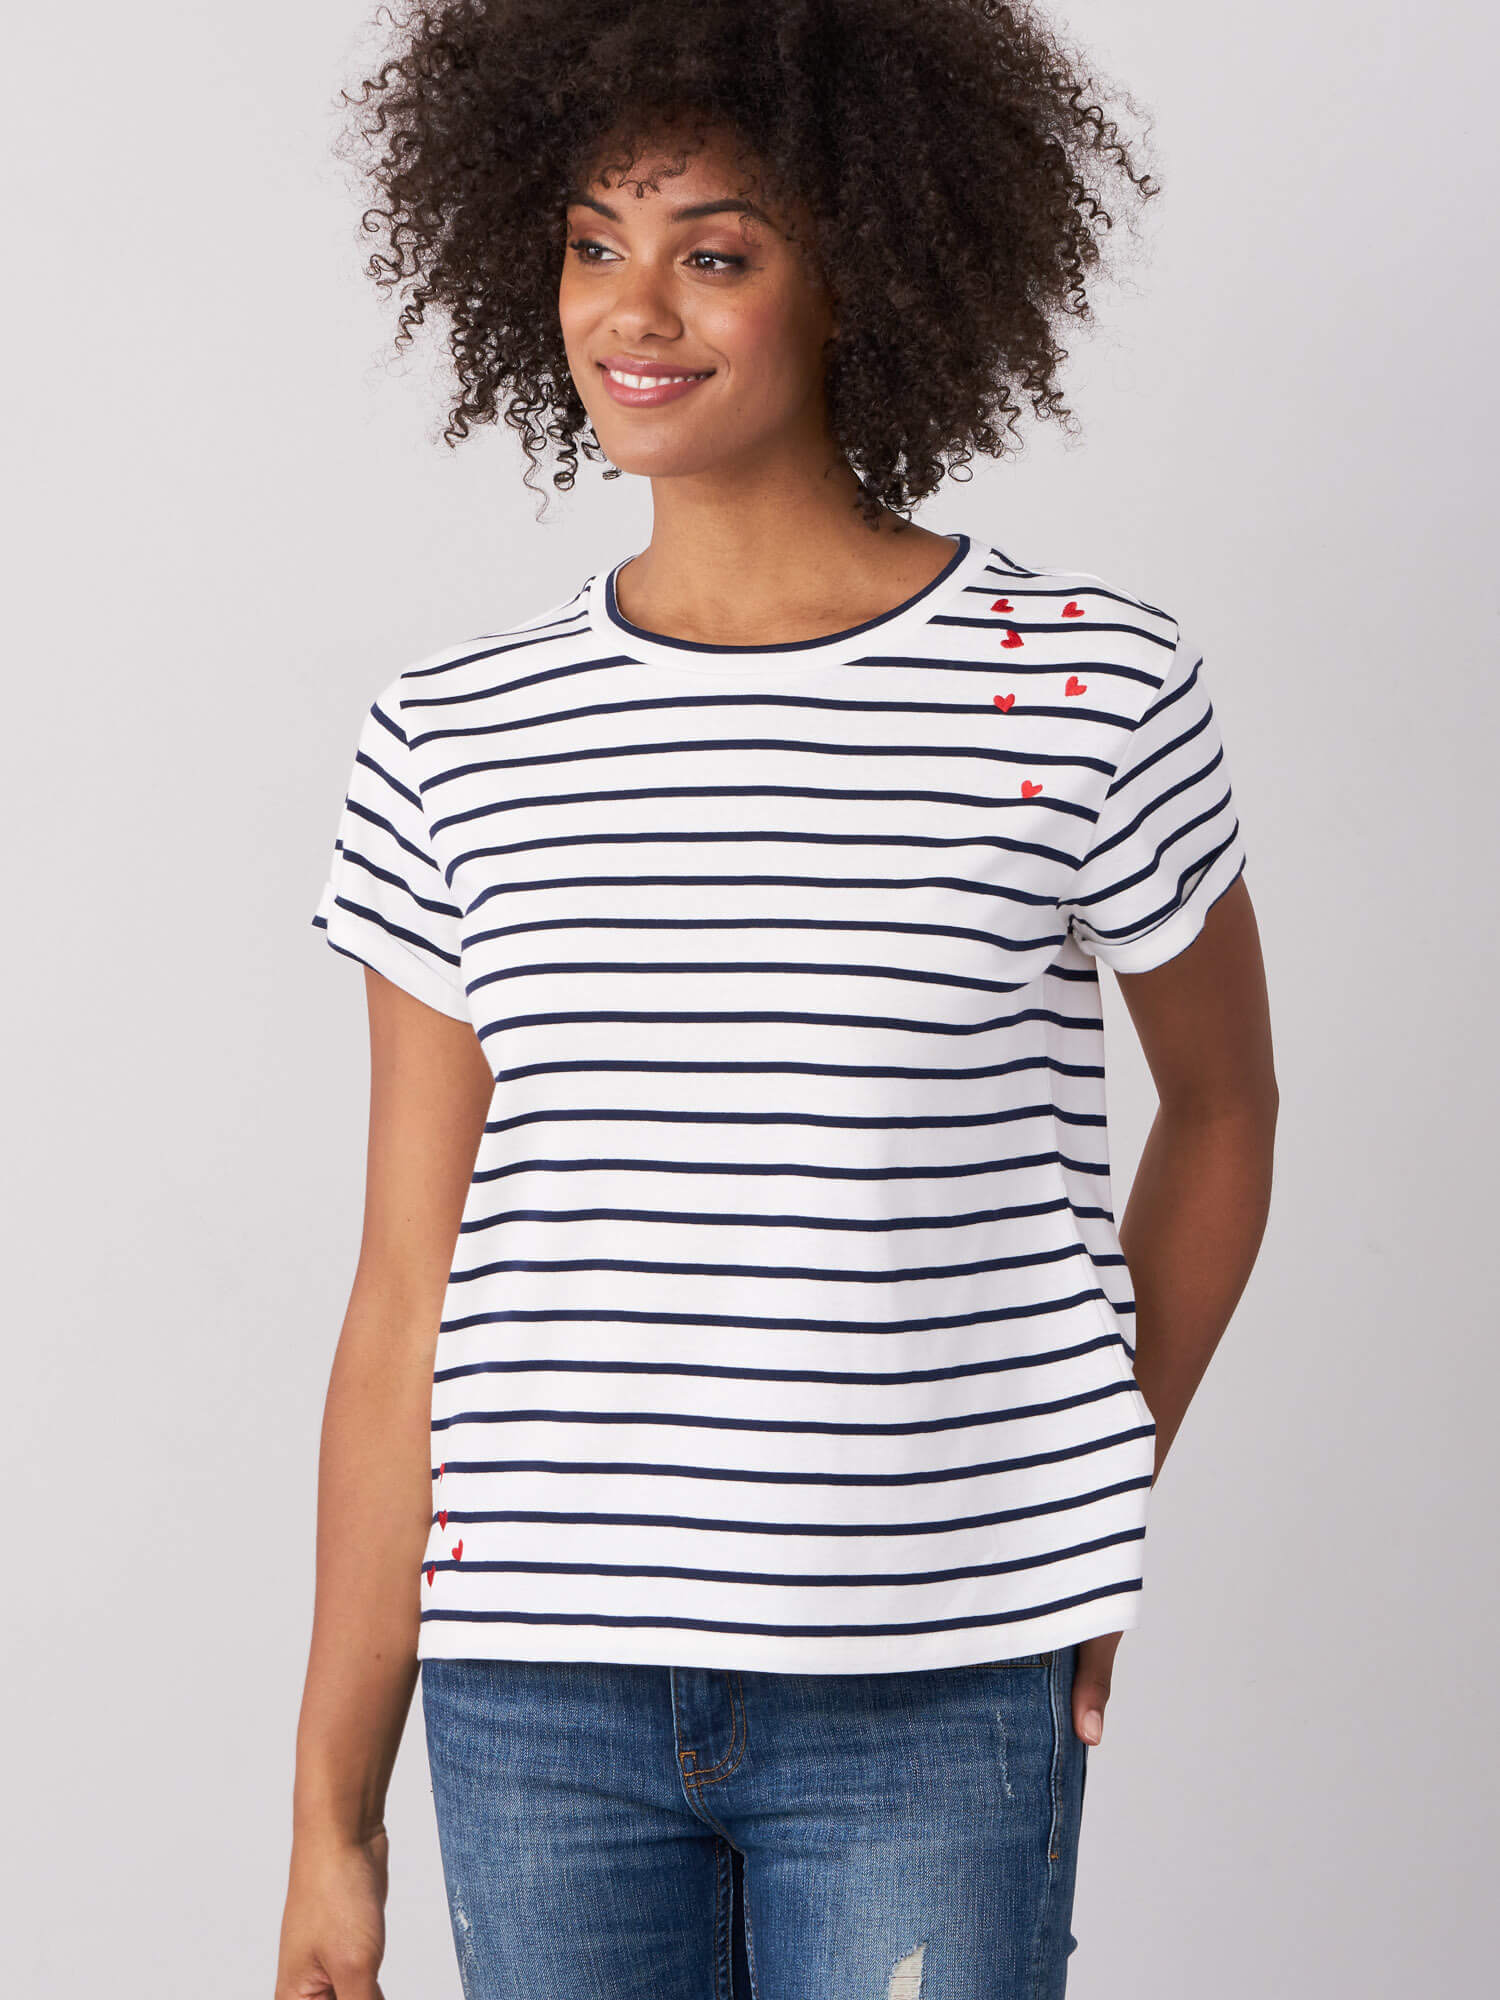 STRIPED T-SHIRT WITH EMBROIDERED HEARTS (4588784156749)